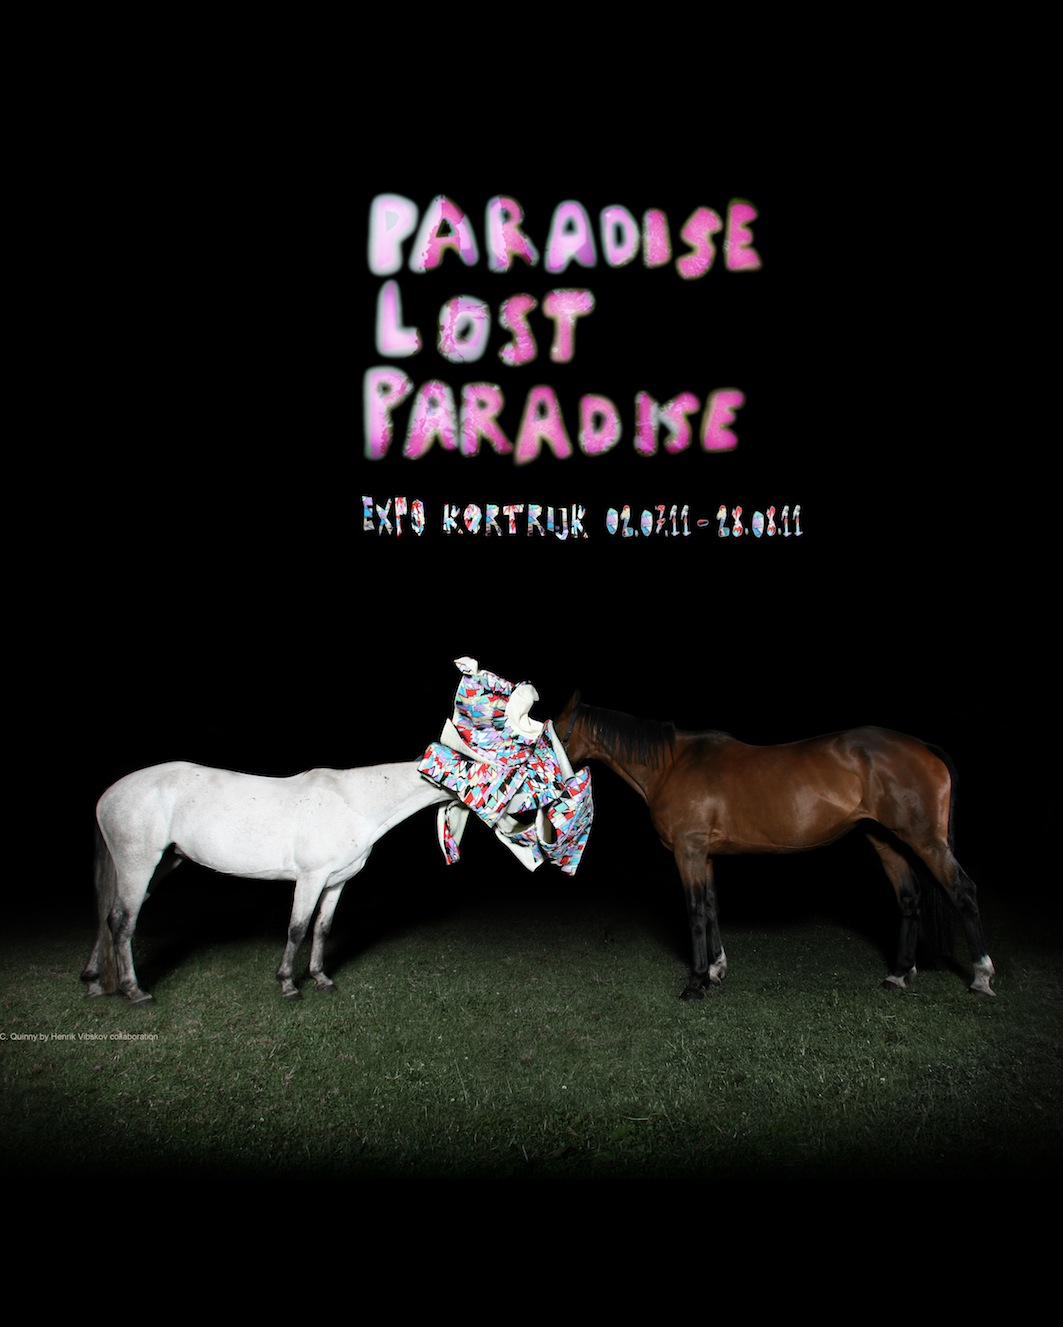 PARADISE LOST PARADISE